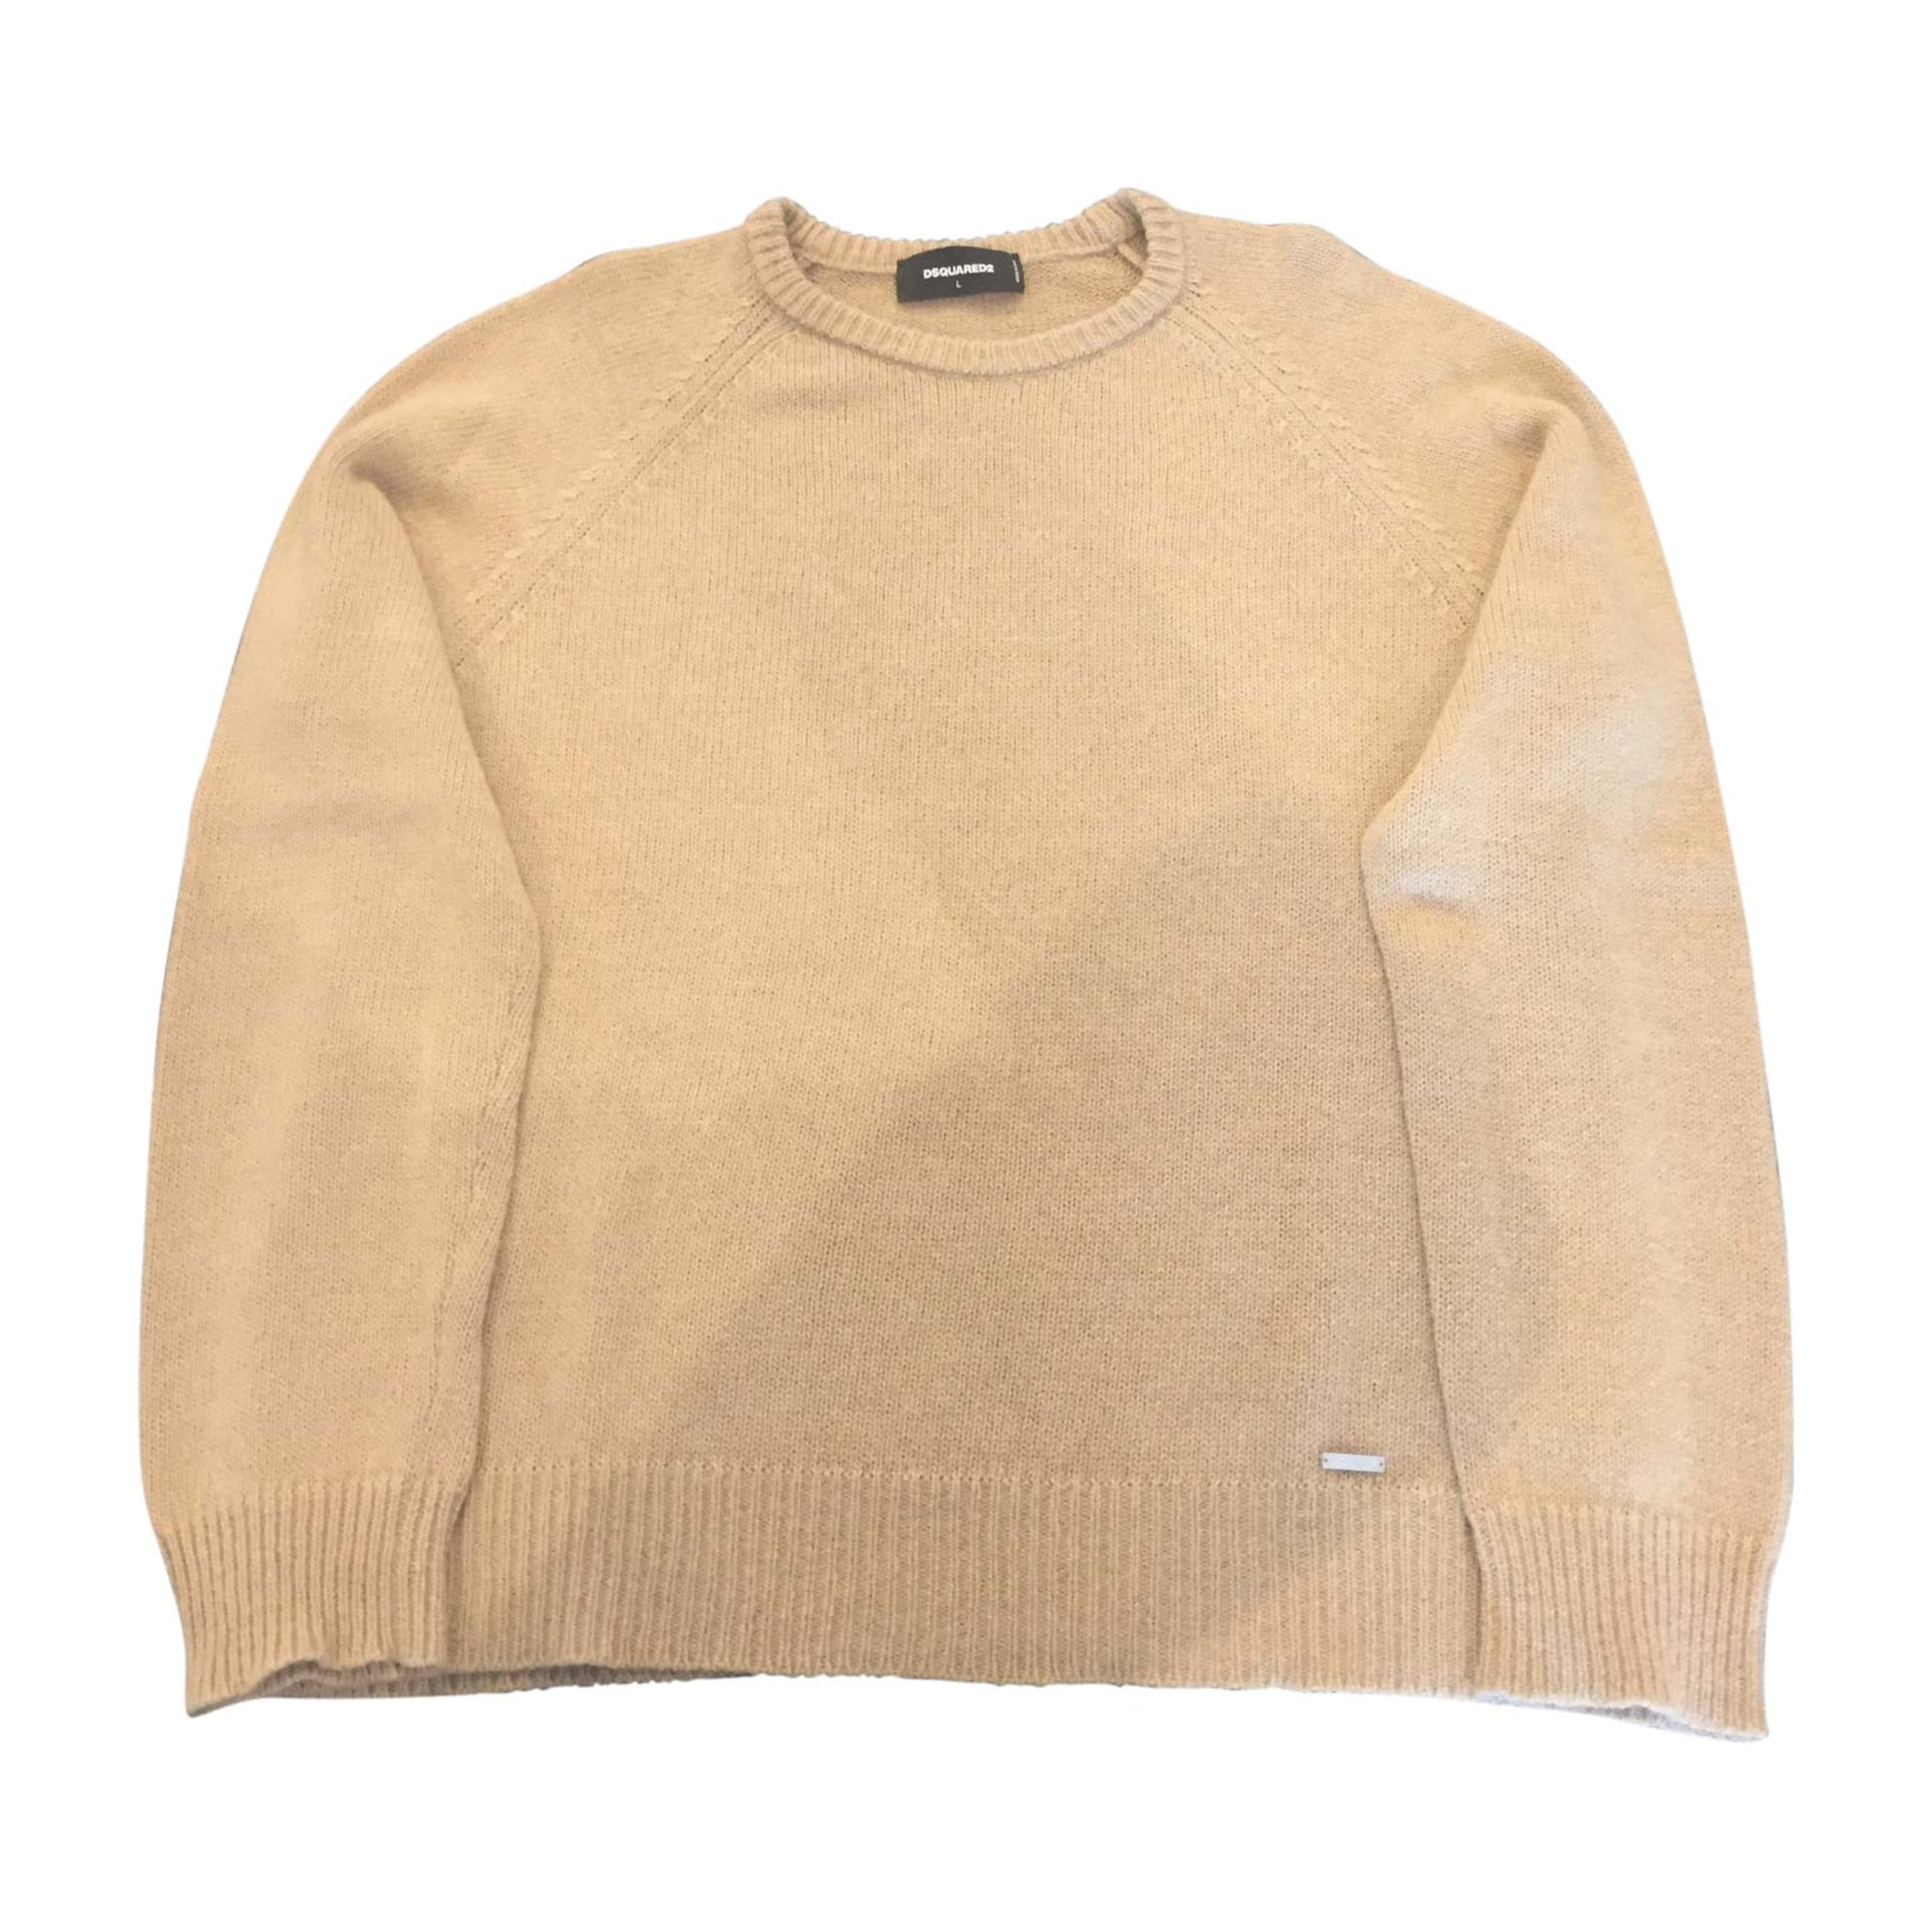 Pull DSQUARED2 Beige, camel